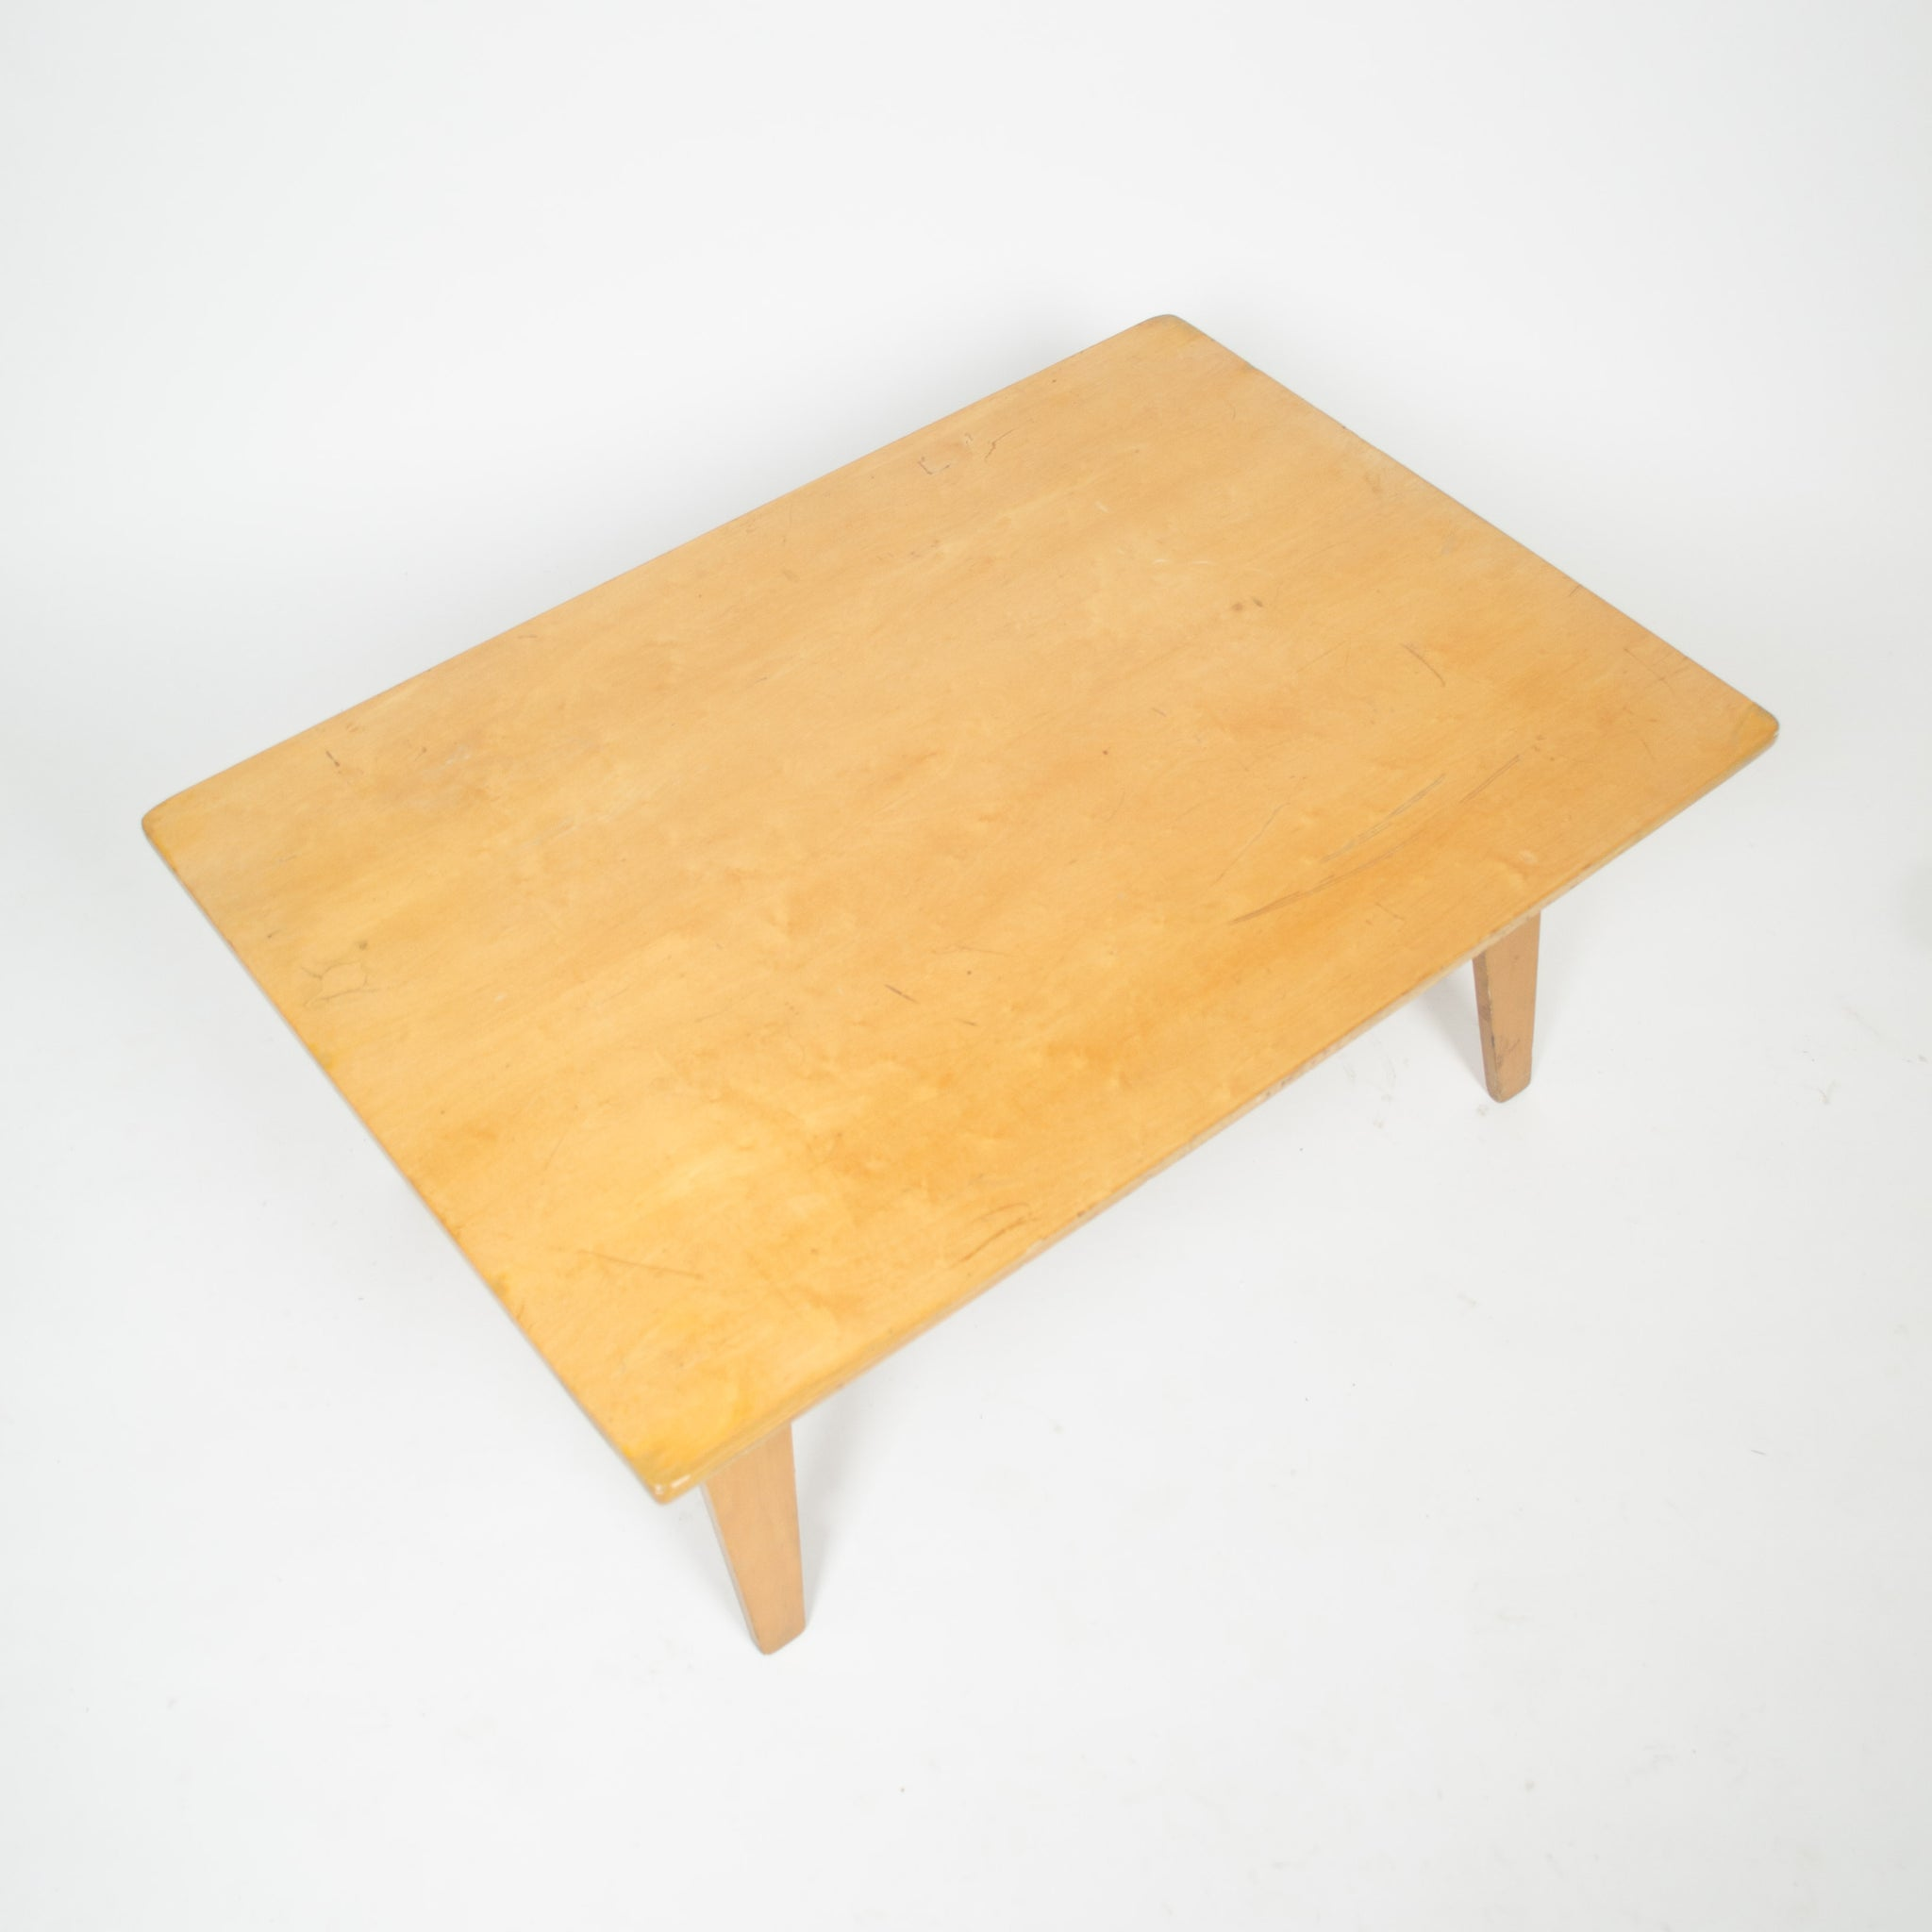 Eames Herman Miller Evans OTW 1946 Coffee Table Maple Cinema Prop